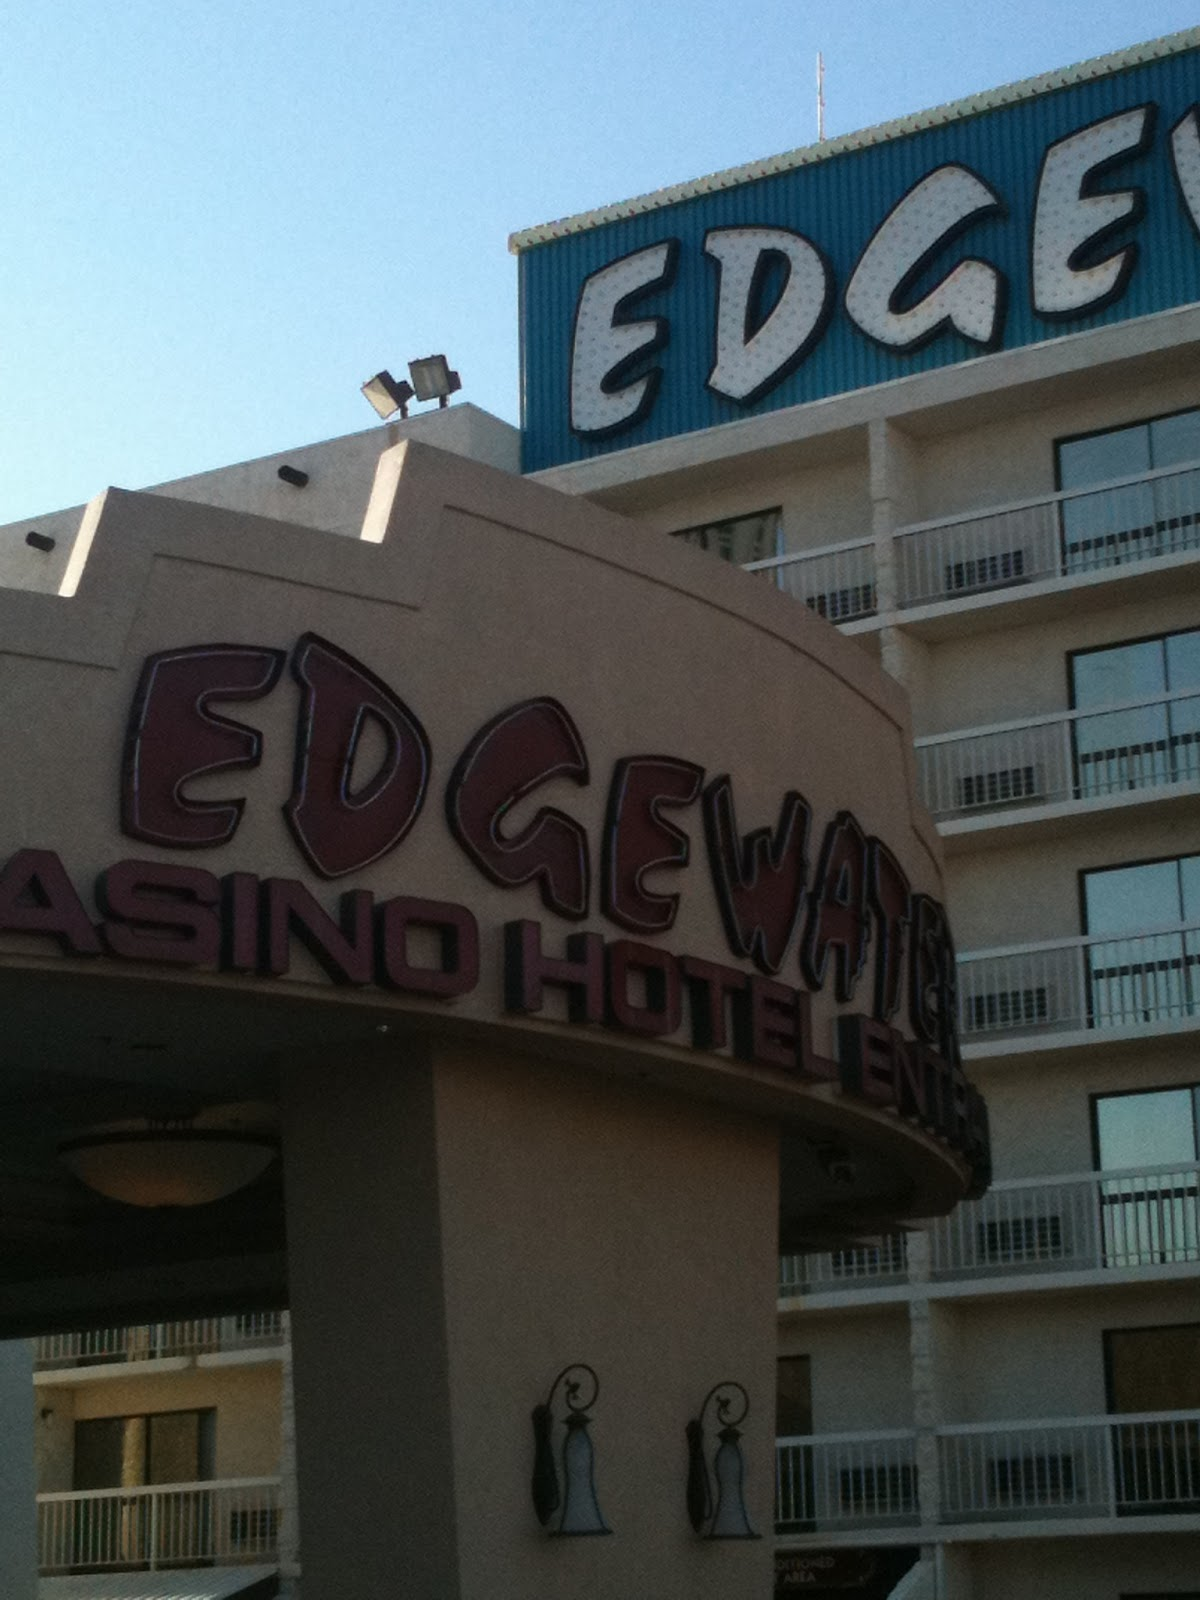 Dining Options At The Edgewater Include A Steakhouse Three Fast Food Choices Coffee No Seating Yogurt Place Diner And Buffet